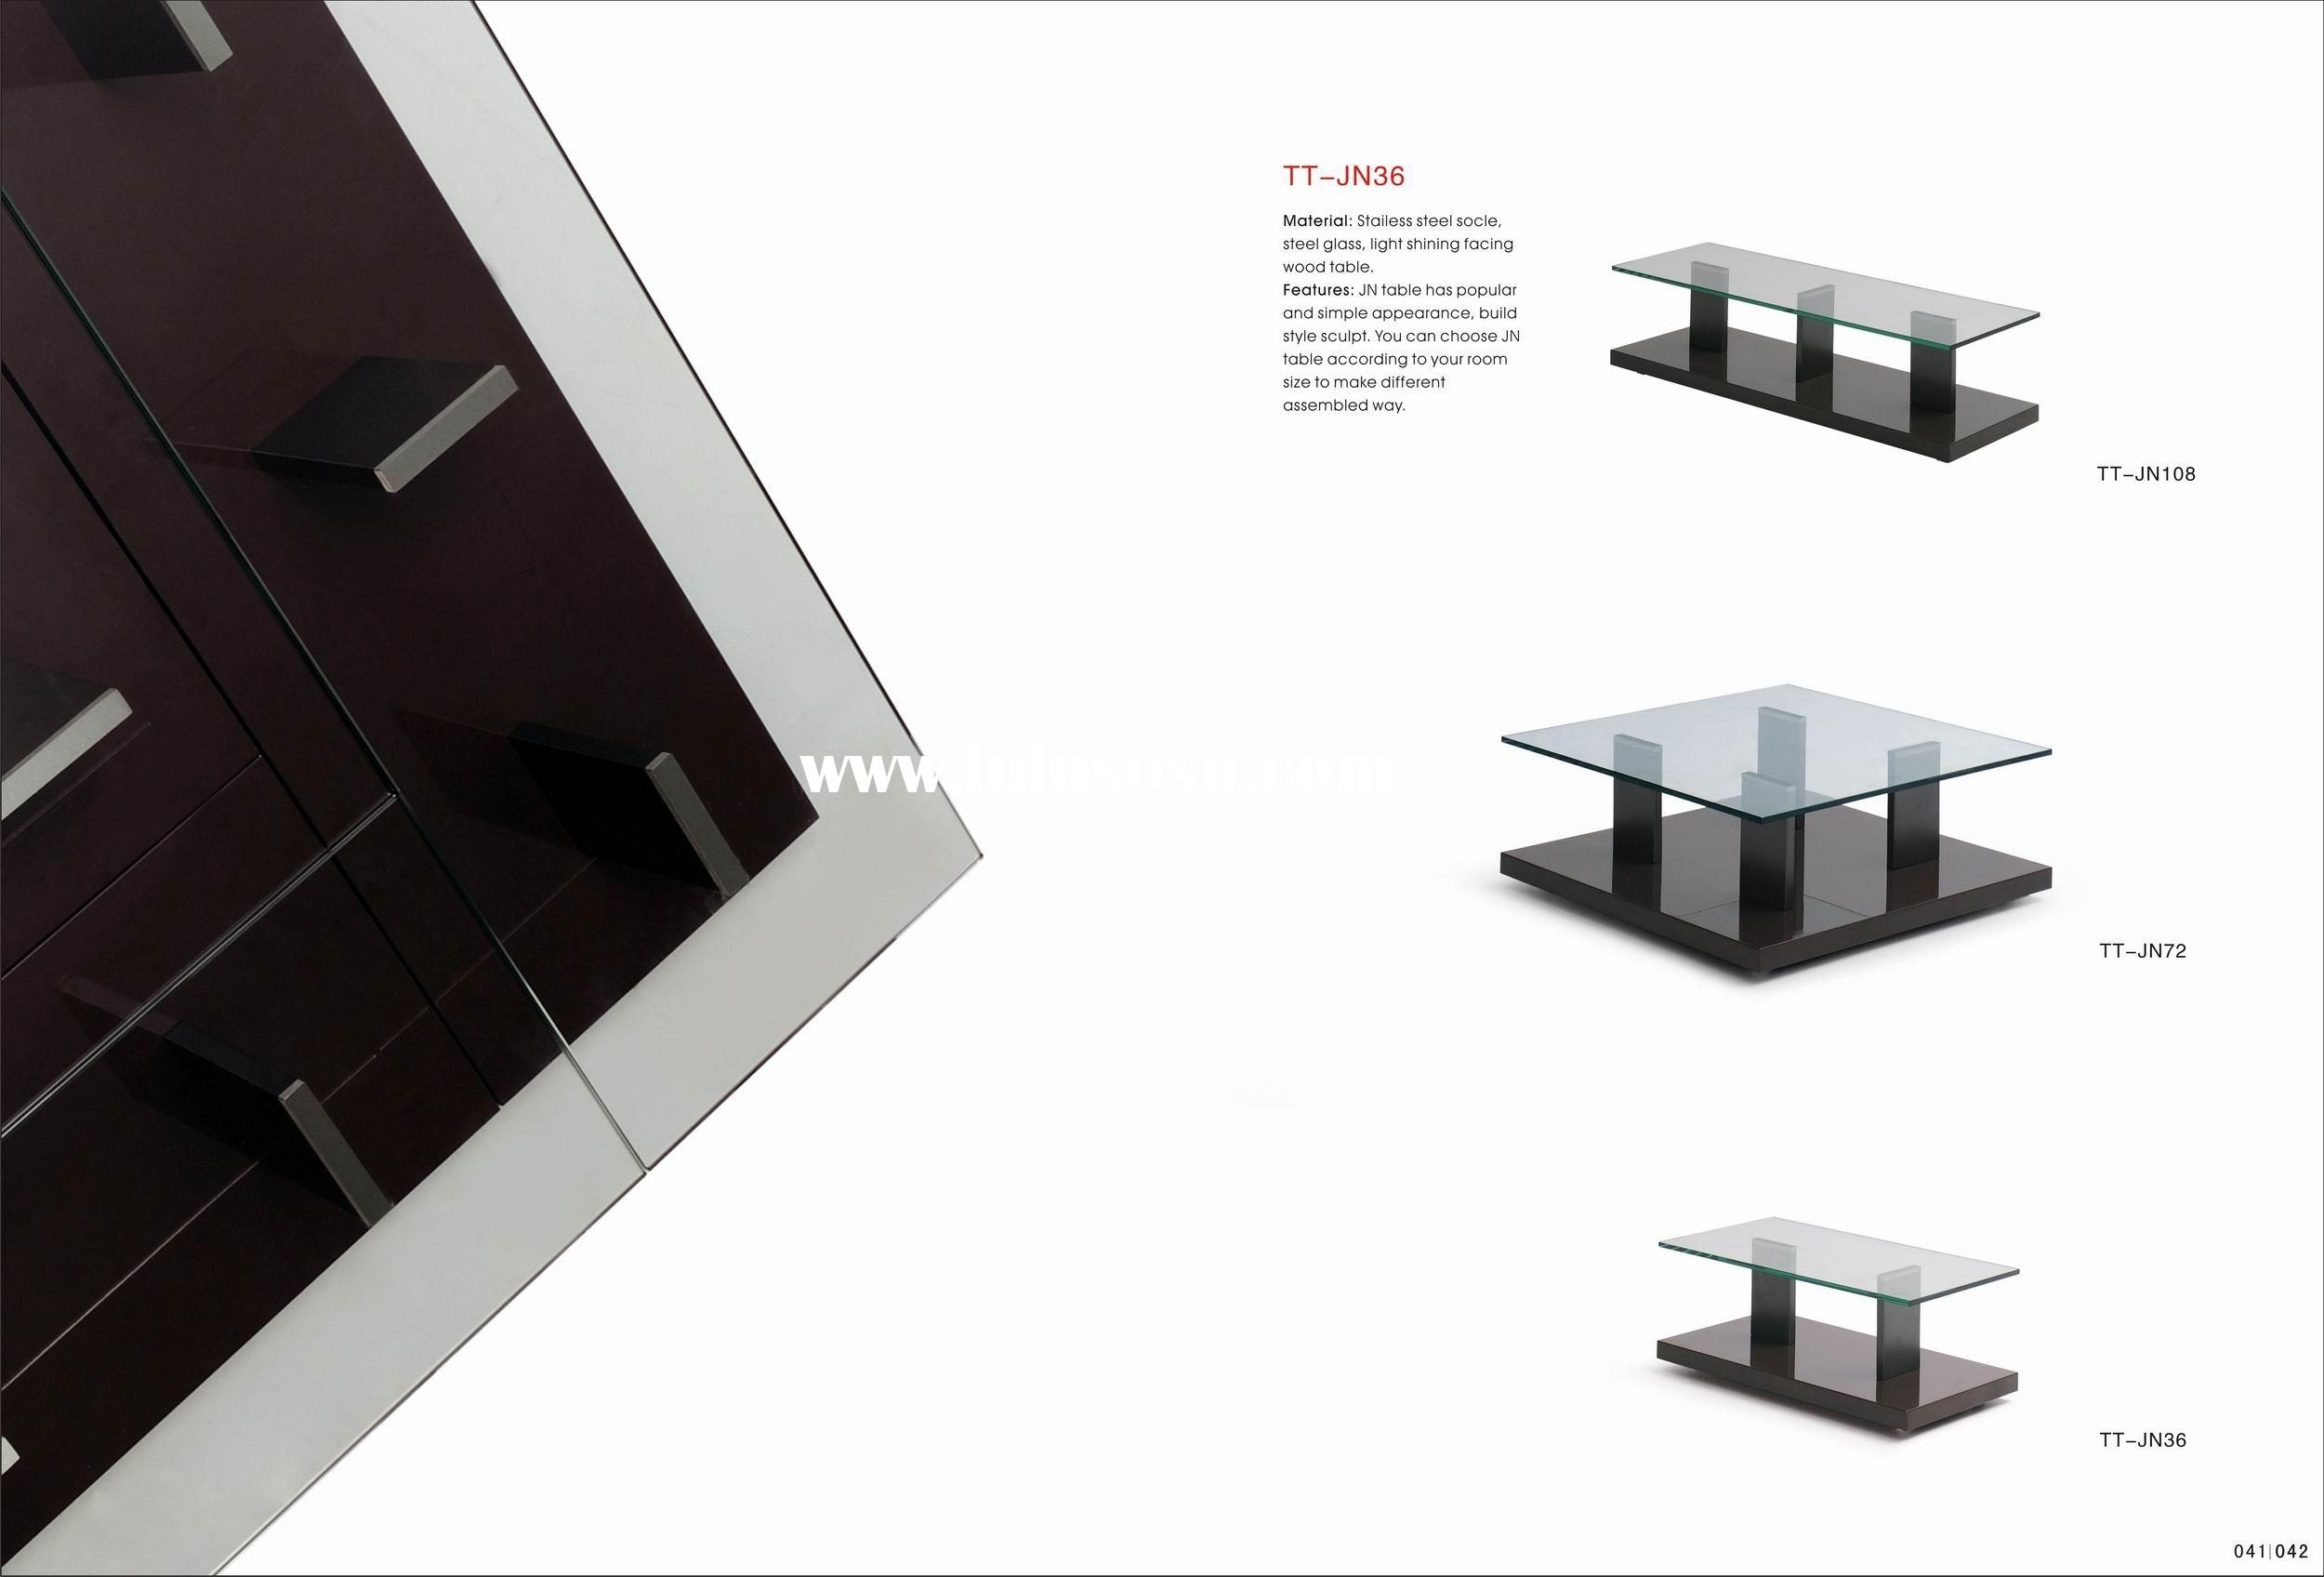 stainless steel socle tempered glass top coffee table DST-TT-JN36